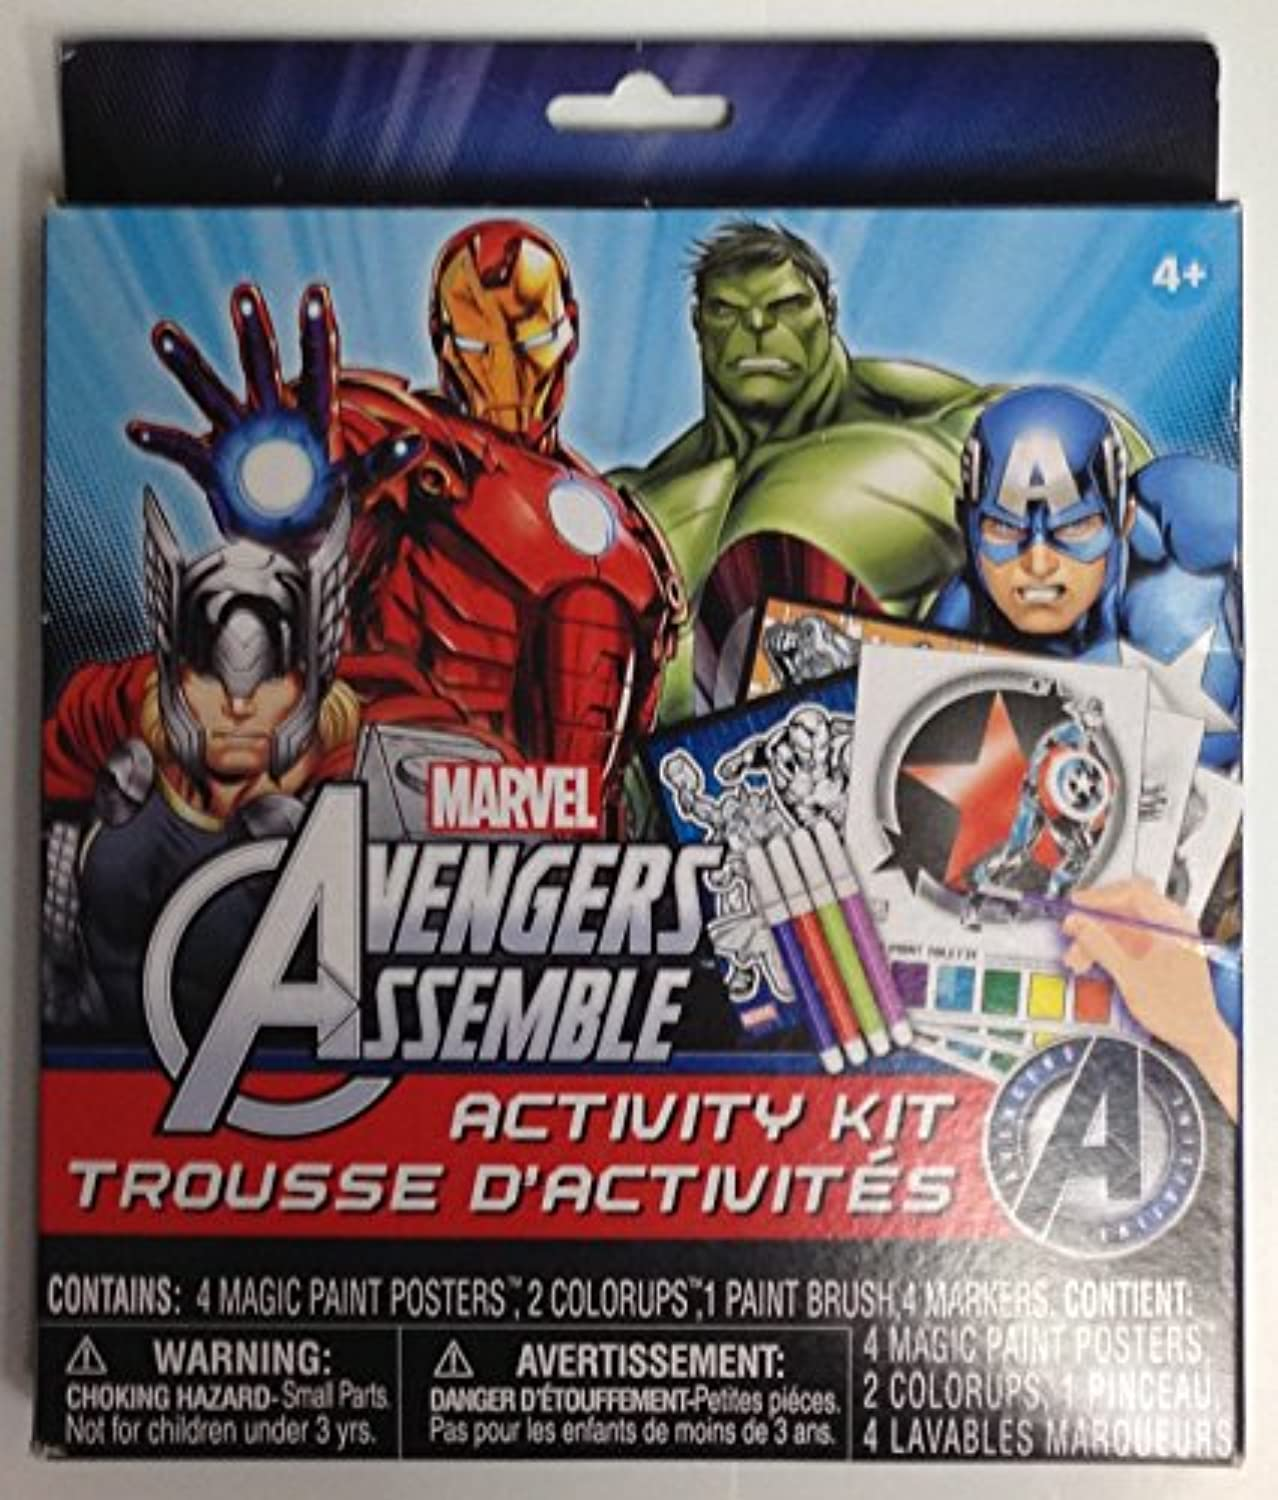 MARVEL Avengers Assemble Activity Kit